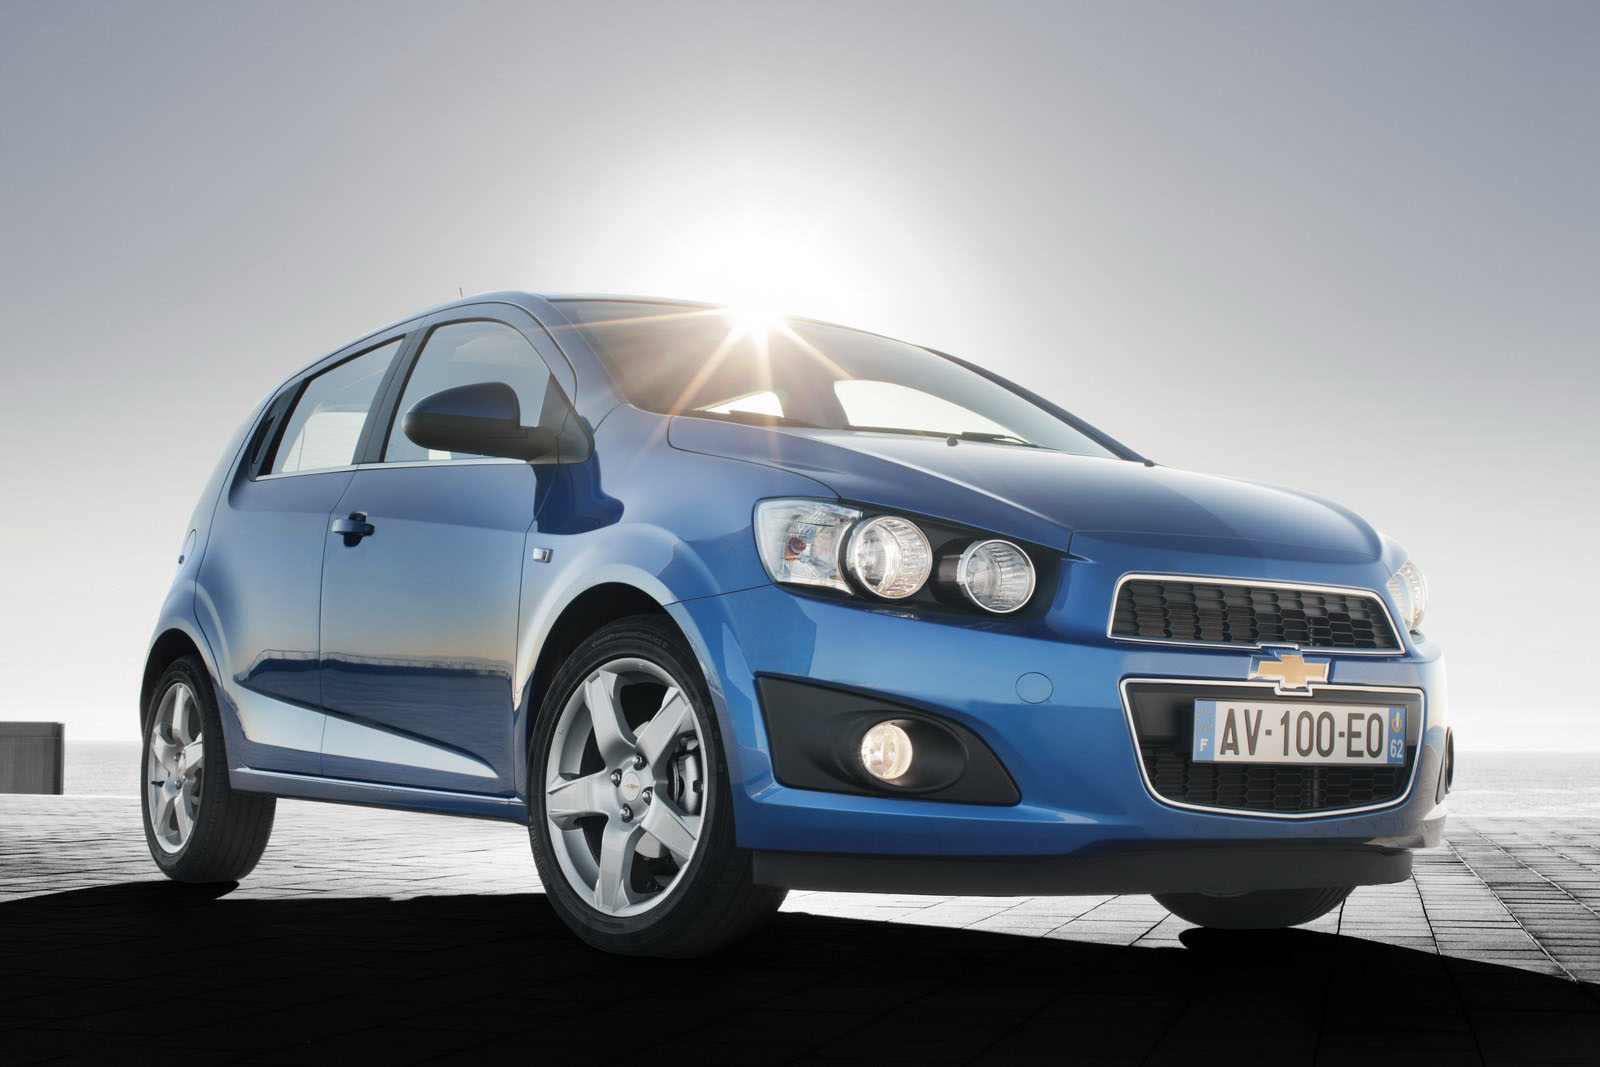 2012 Chevrolet Aveo Hatchback 3 Chevrolet to Backfire 2012 Aveo Hatchback and Sedan for Sale